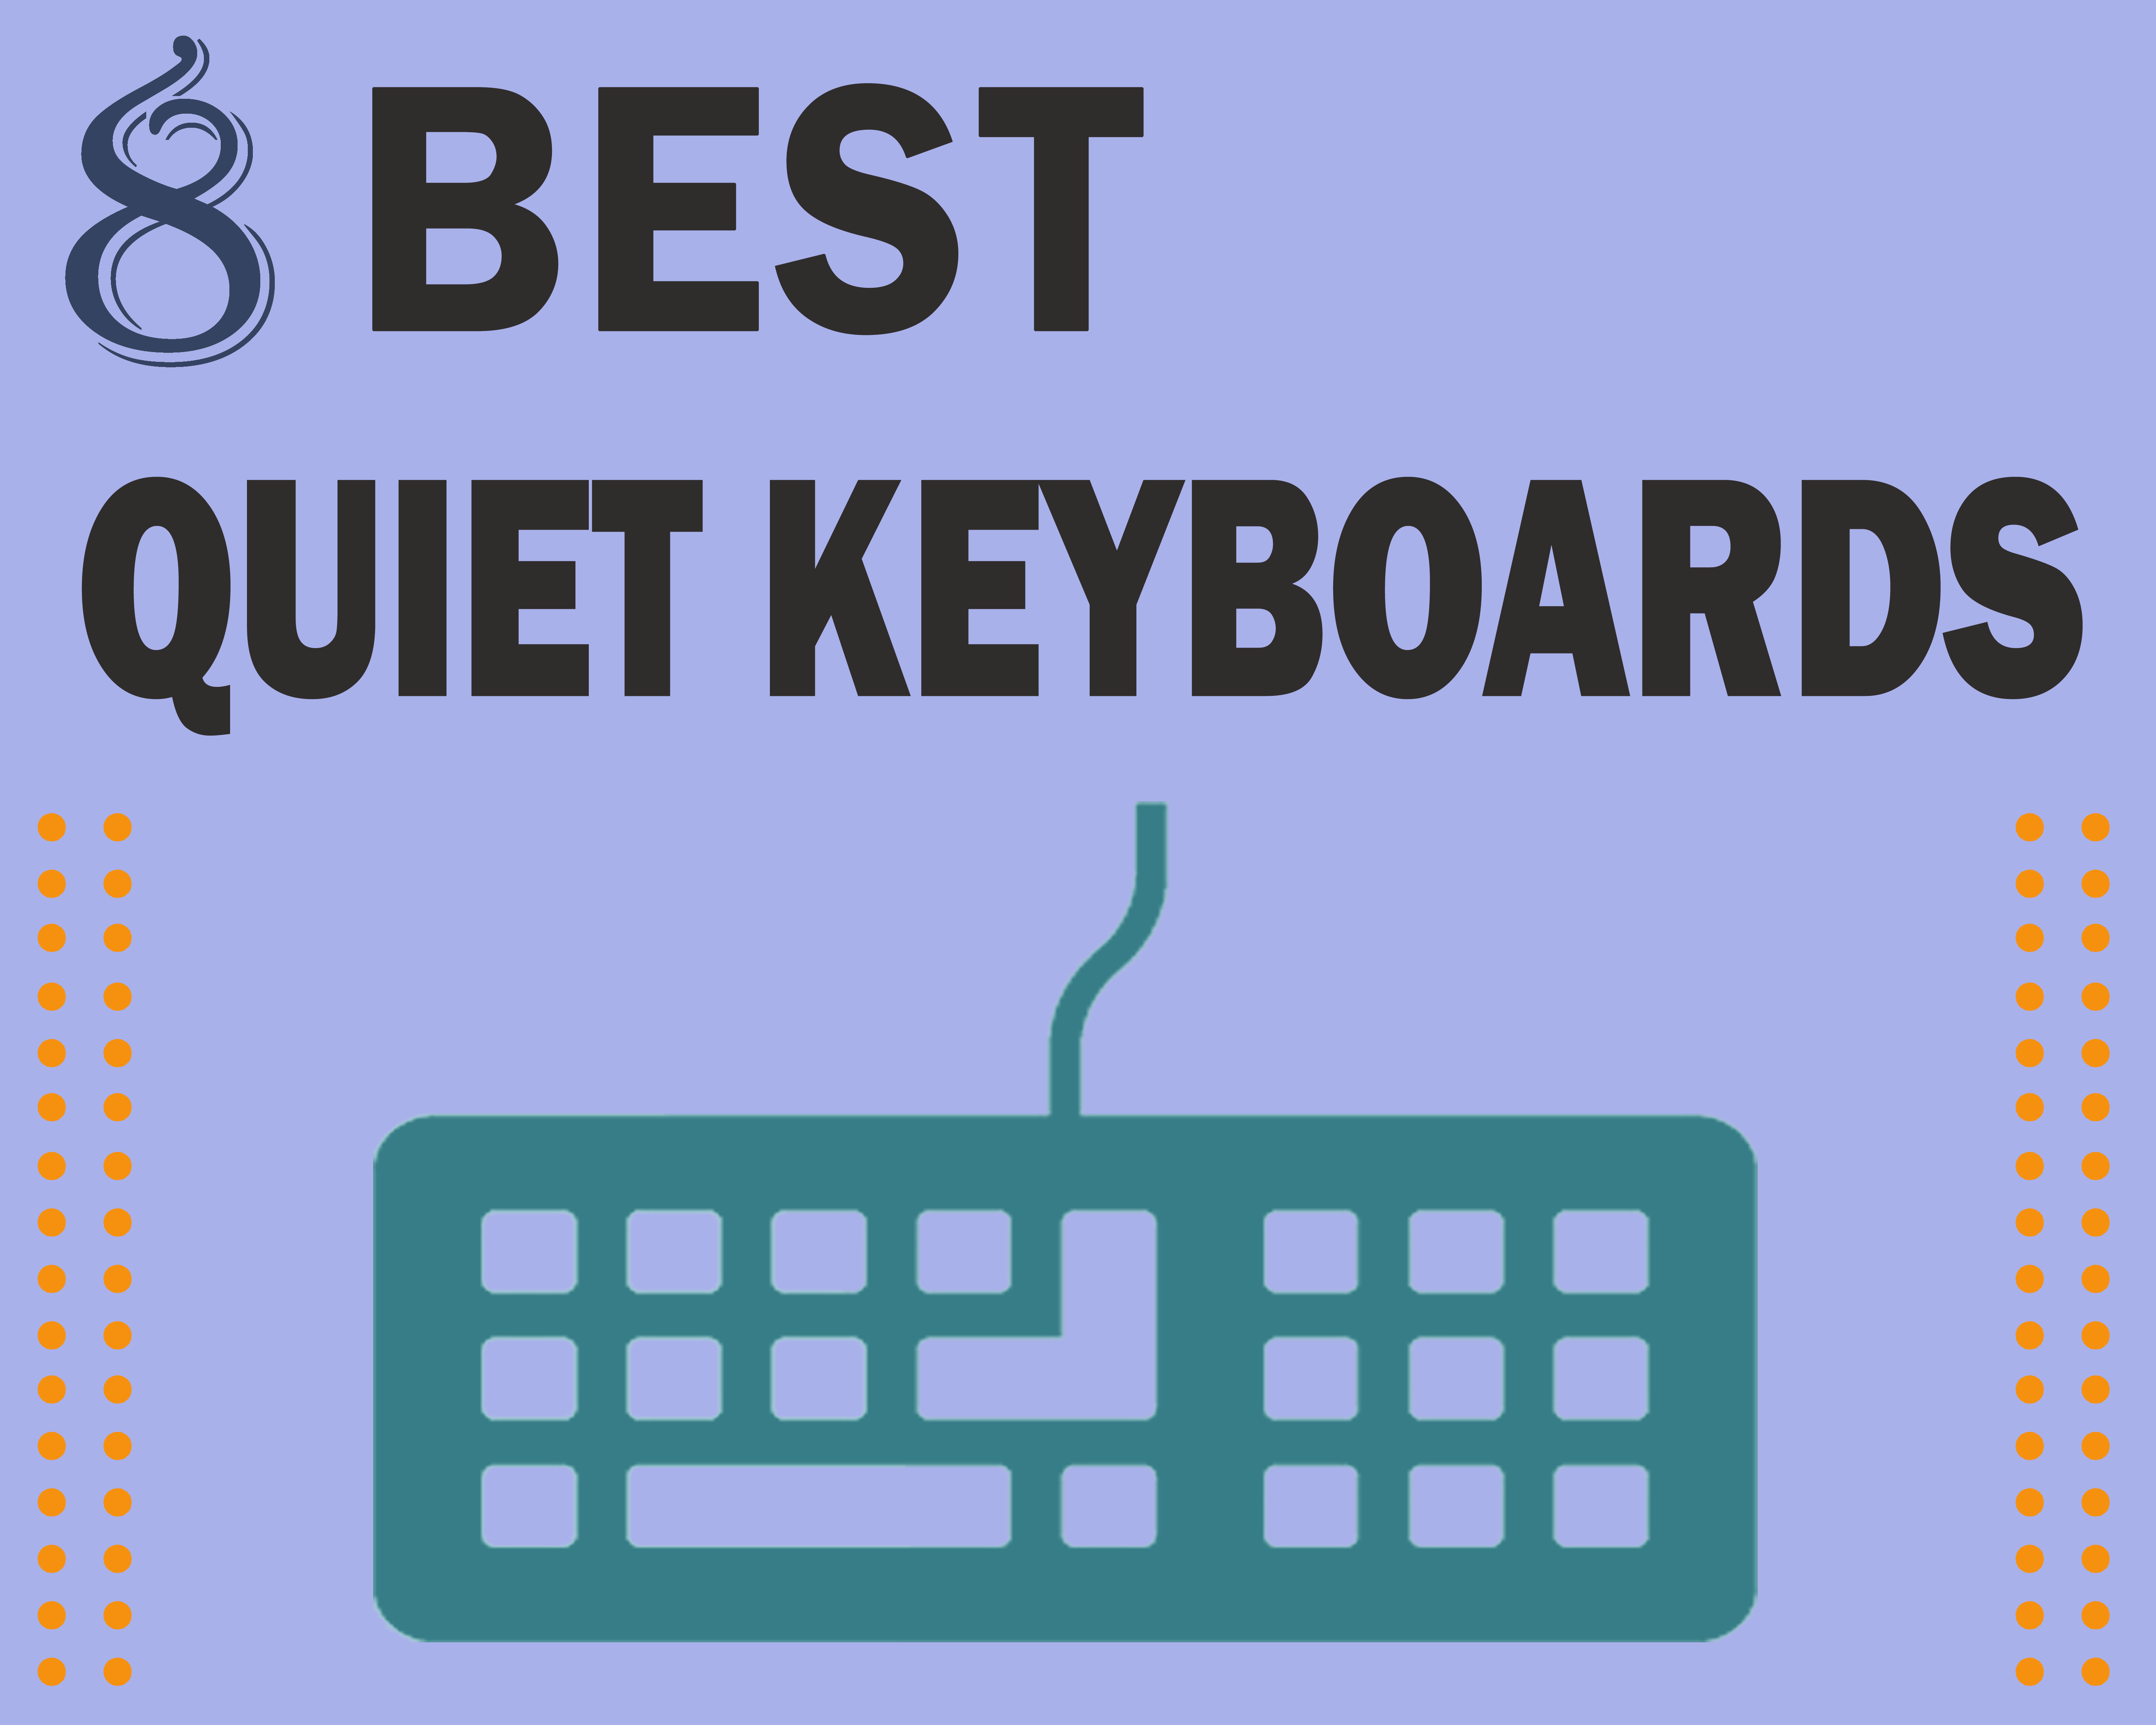 Top 8 Best Quiet Keyboards [Buying Guide] For Office, Gaming and Home